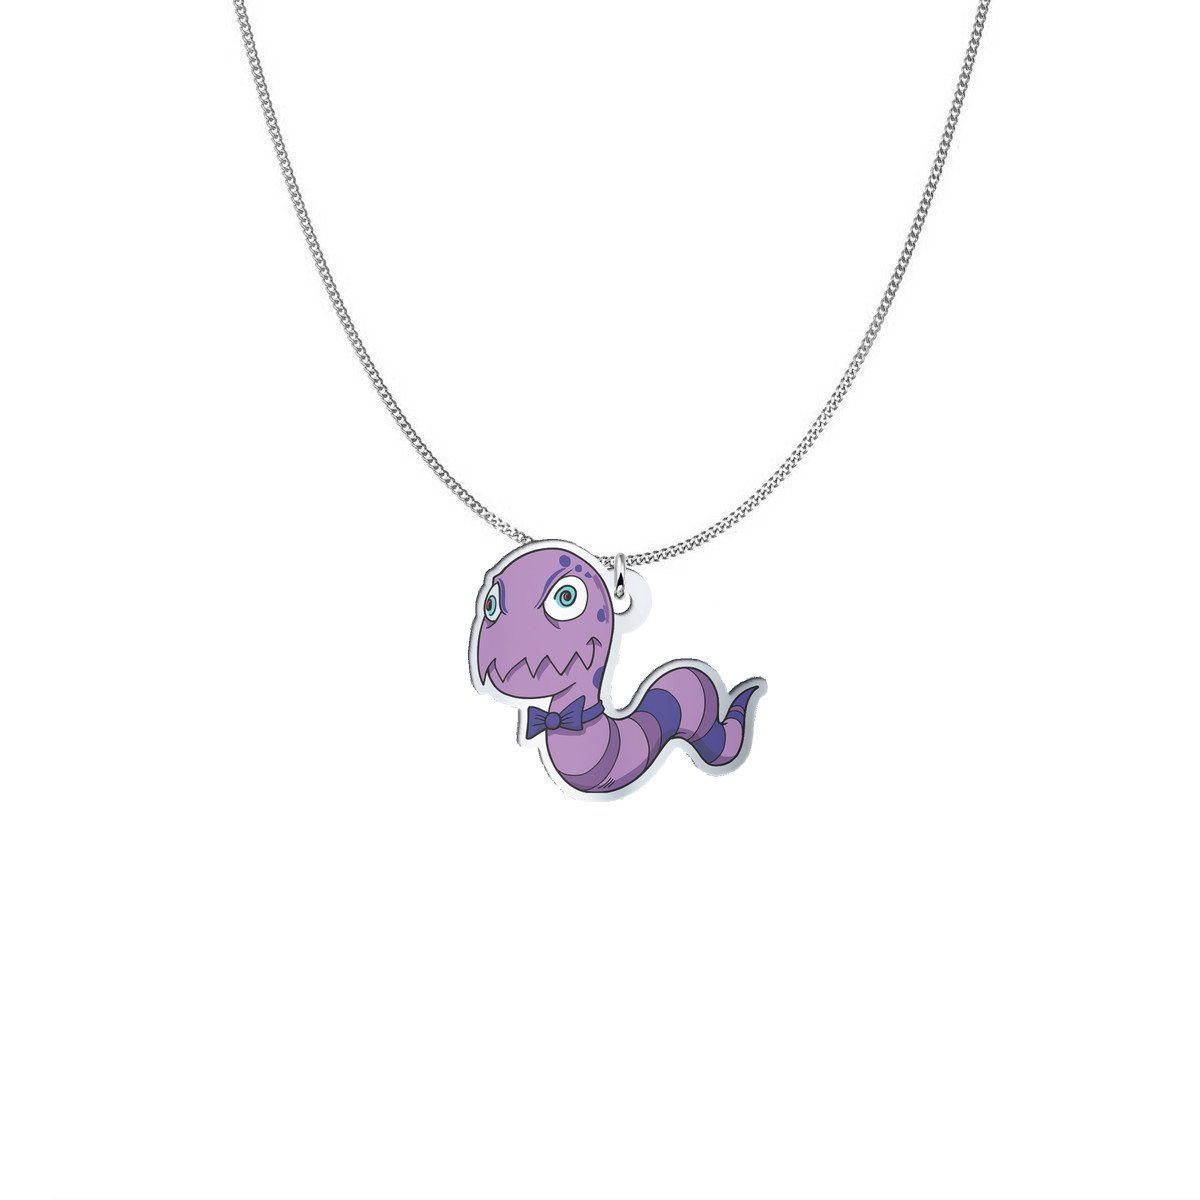 Pendant - Mat The Rheumatoid Arthritis Monster Silver Necklace